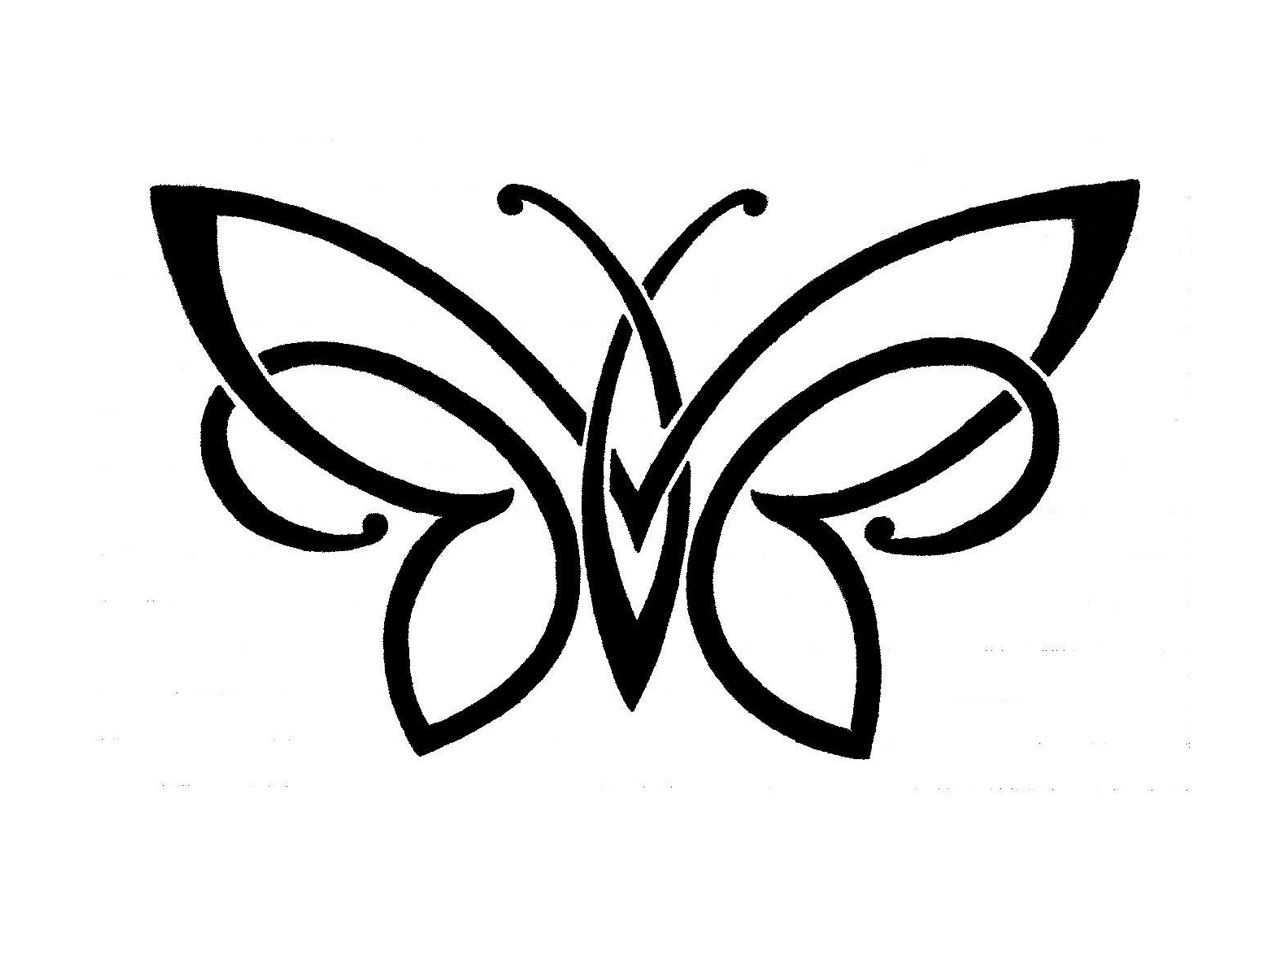 Cool Simple Designs images small simple tattoo designs 2015viraisna web | woodburning